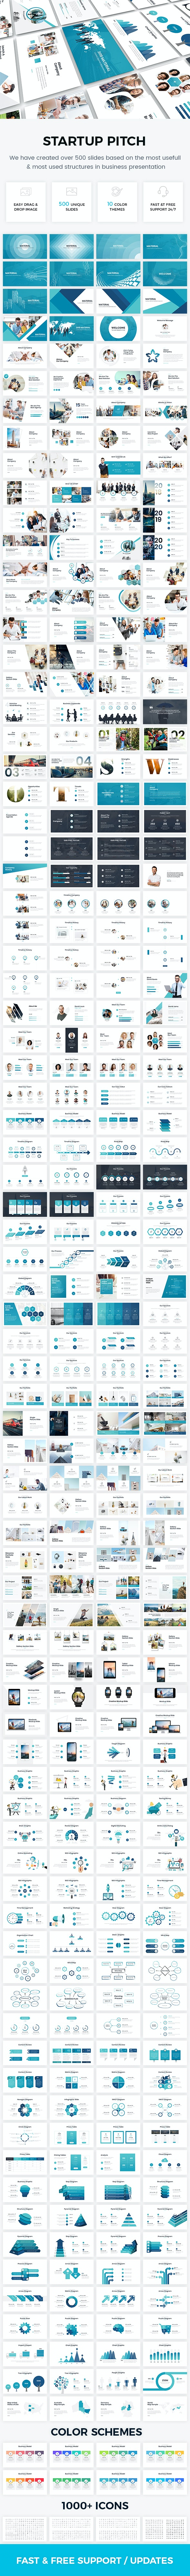 Startup Pitch Deck Bundle Keynote Template 2019 - Business Keynote Templates